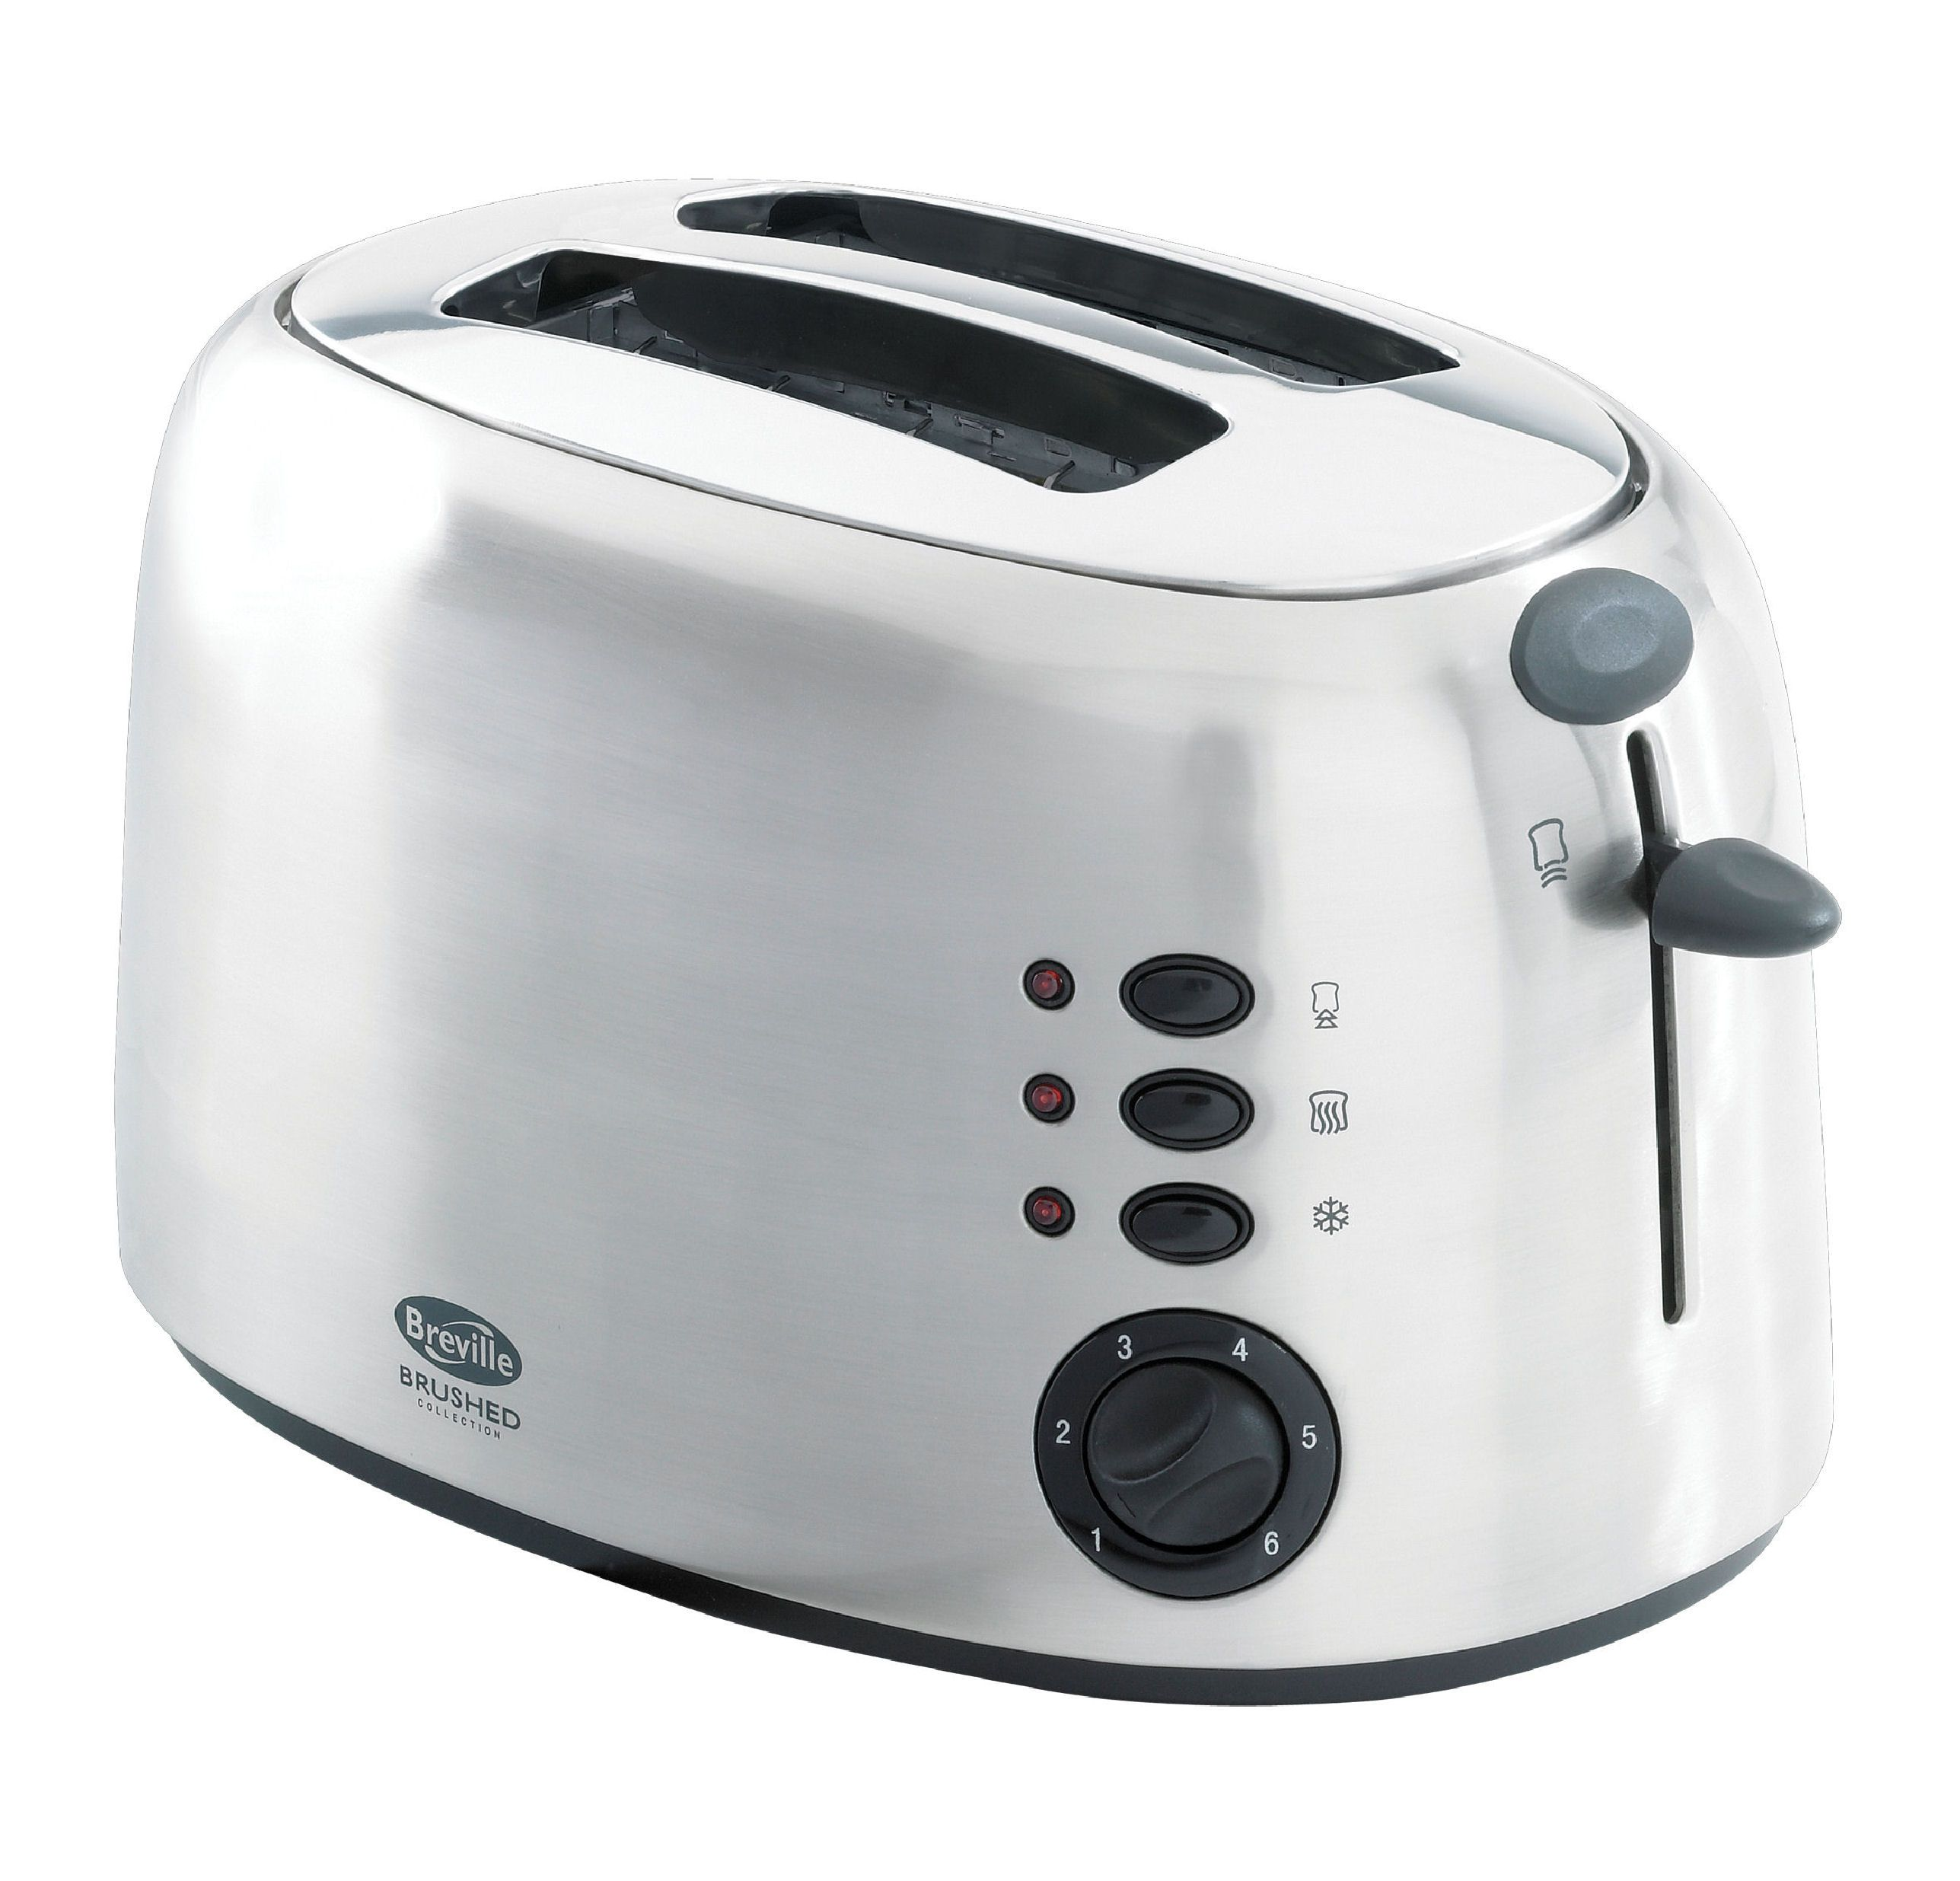 TT58 brushed 2 slice toaster